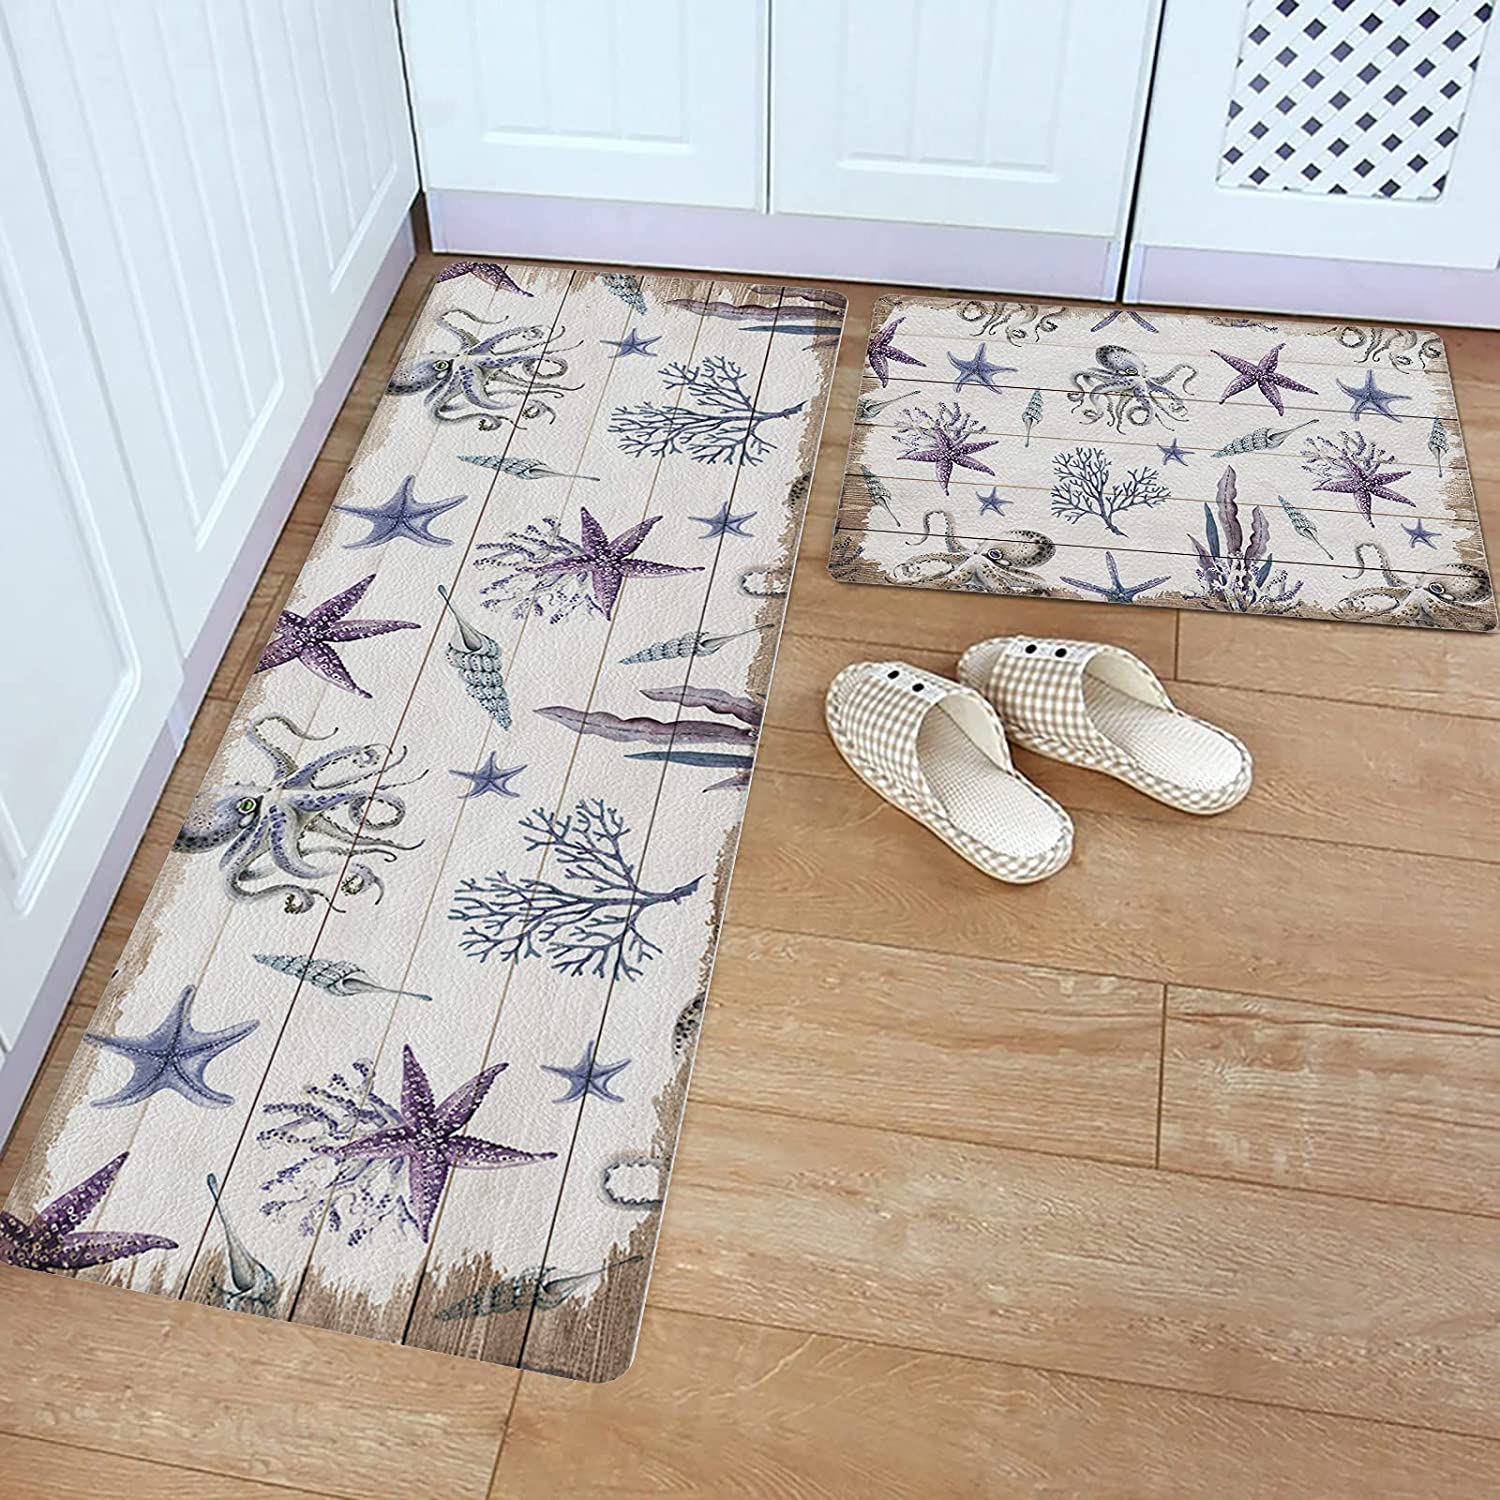 Max 42% OFF Regular dealer Advancey 2 Pieces Kitchen Rugs and Mats Leather PVC Ma Floor Set